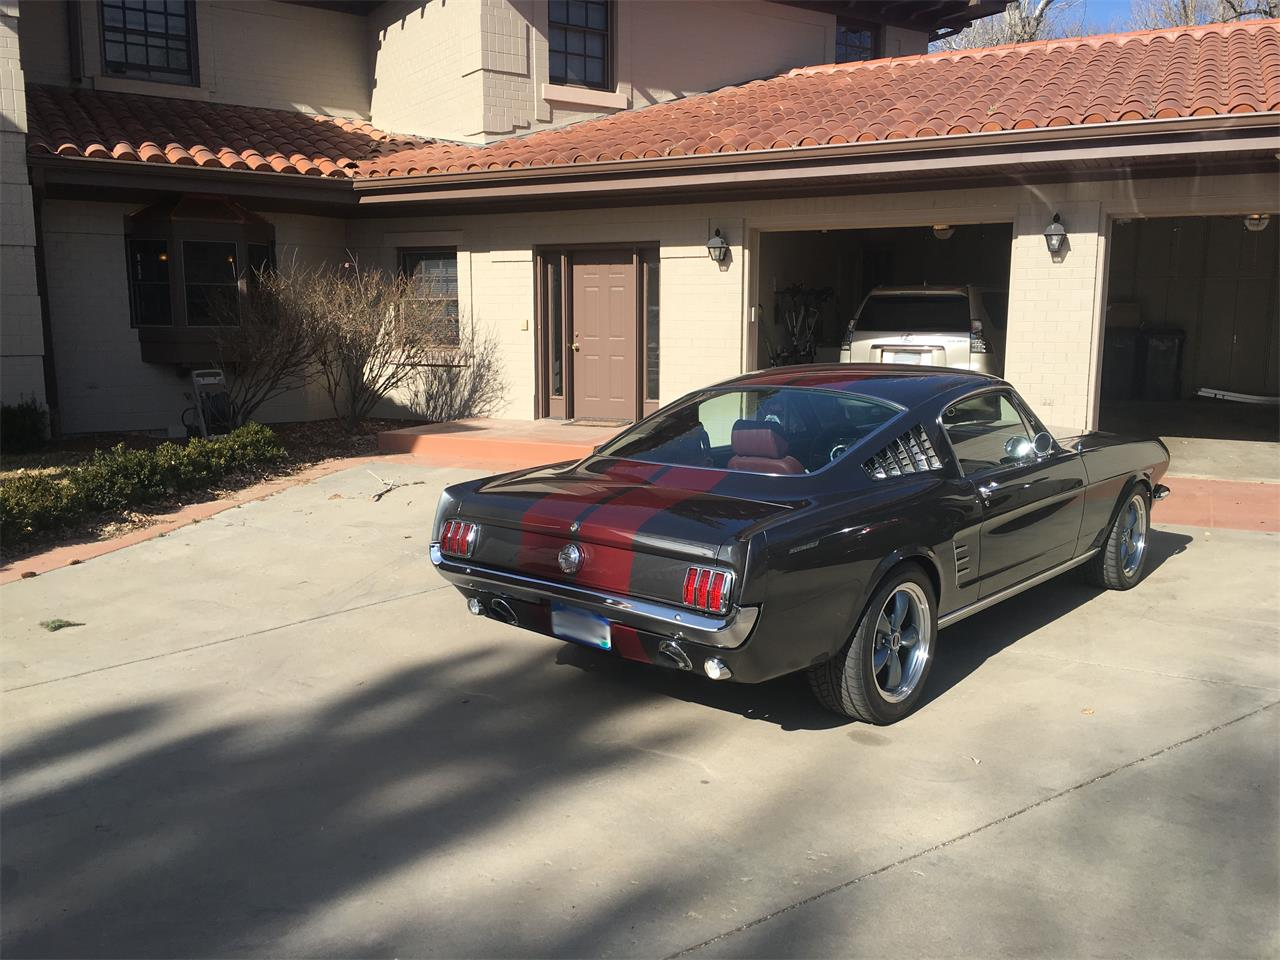 Large Picture of 1966 Ford Mustang GT located in Loveland Colorado - $114,000.00 Offered by a Private Seller - N4N1